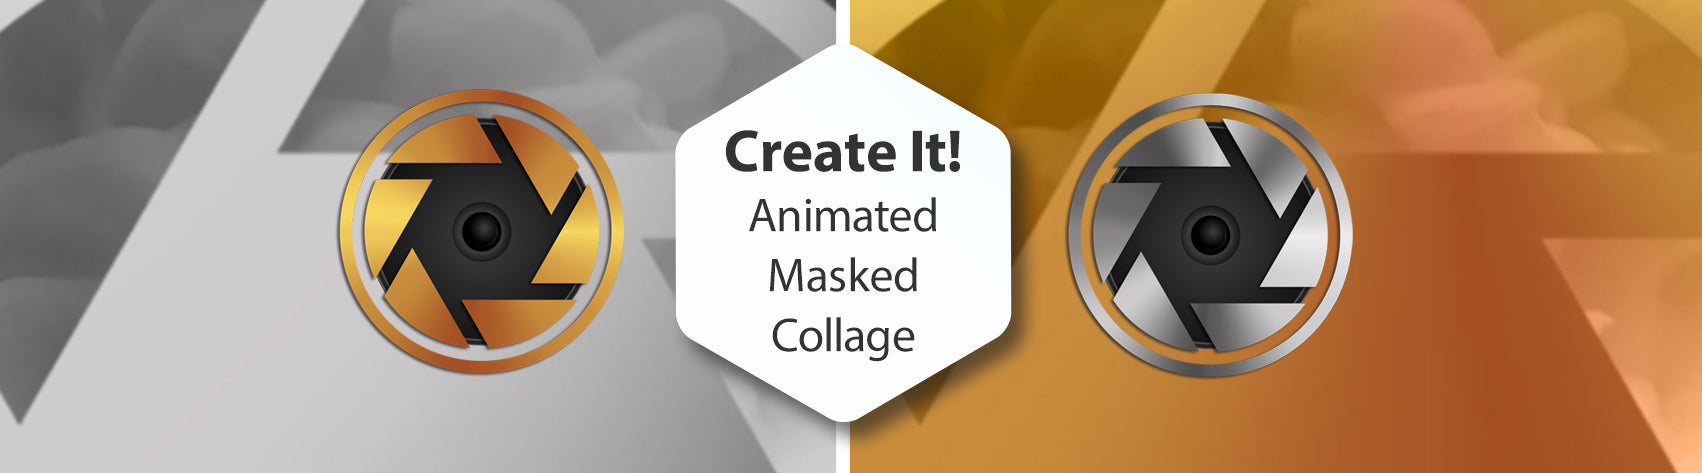 Create It! Animated Masked Collage